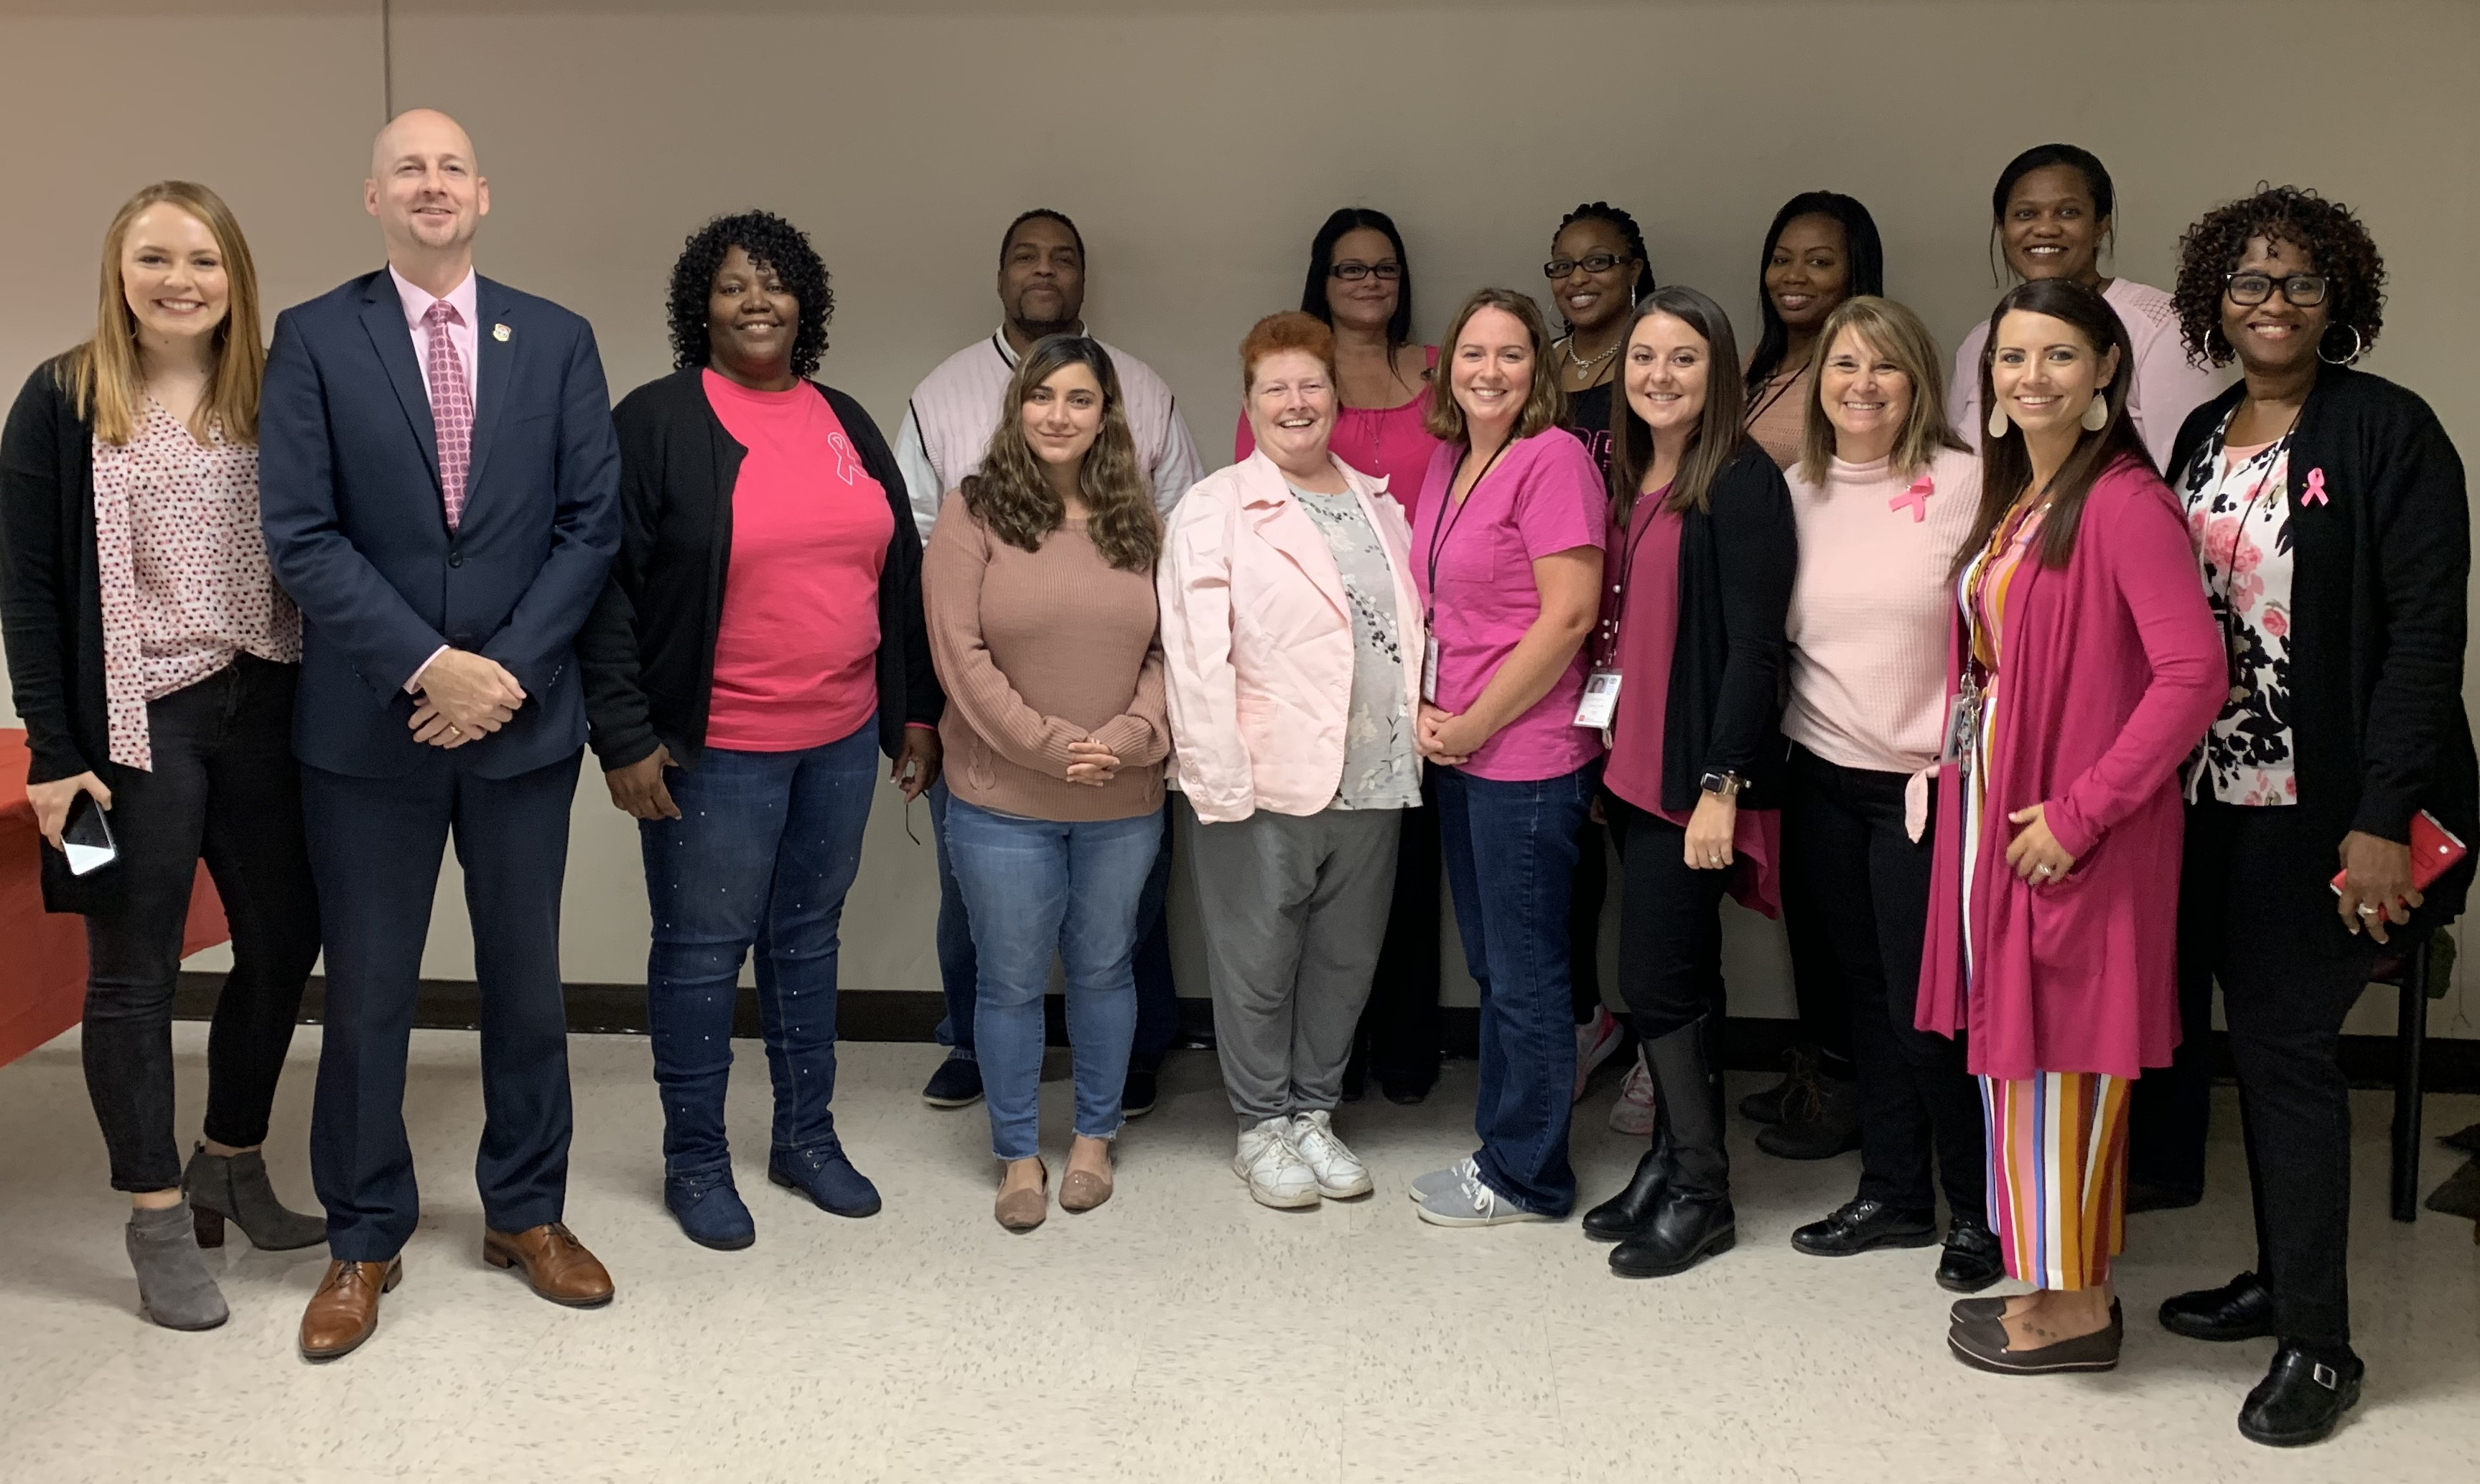 Employees at DIDD's Middle TN office wore pink for Breast Cancer Awareness Month, including Commissioner Brad Turner (pictured second from left)